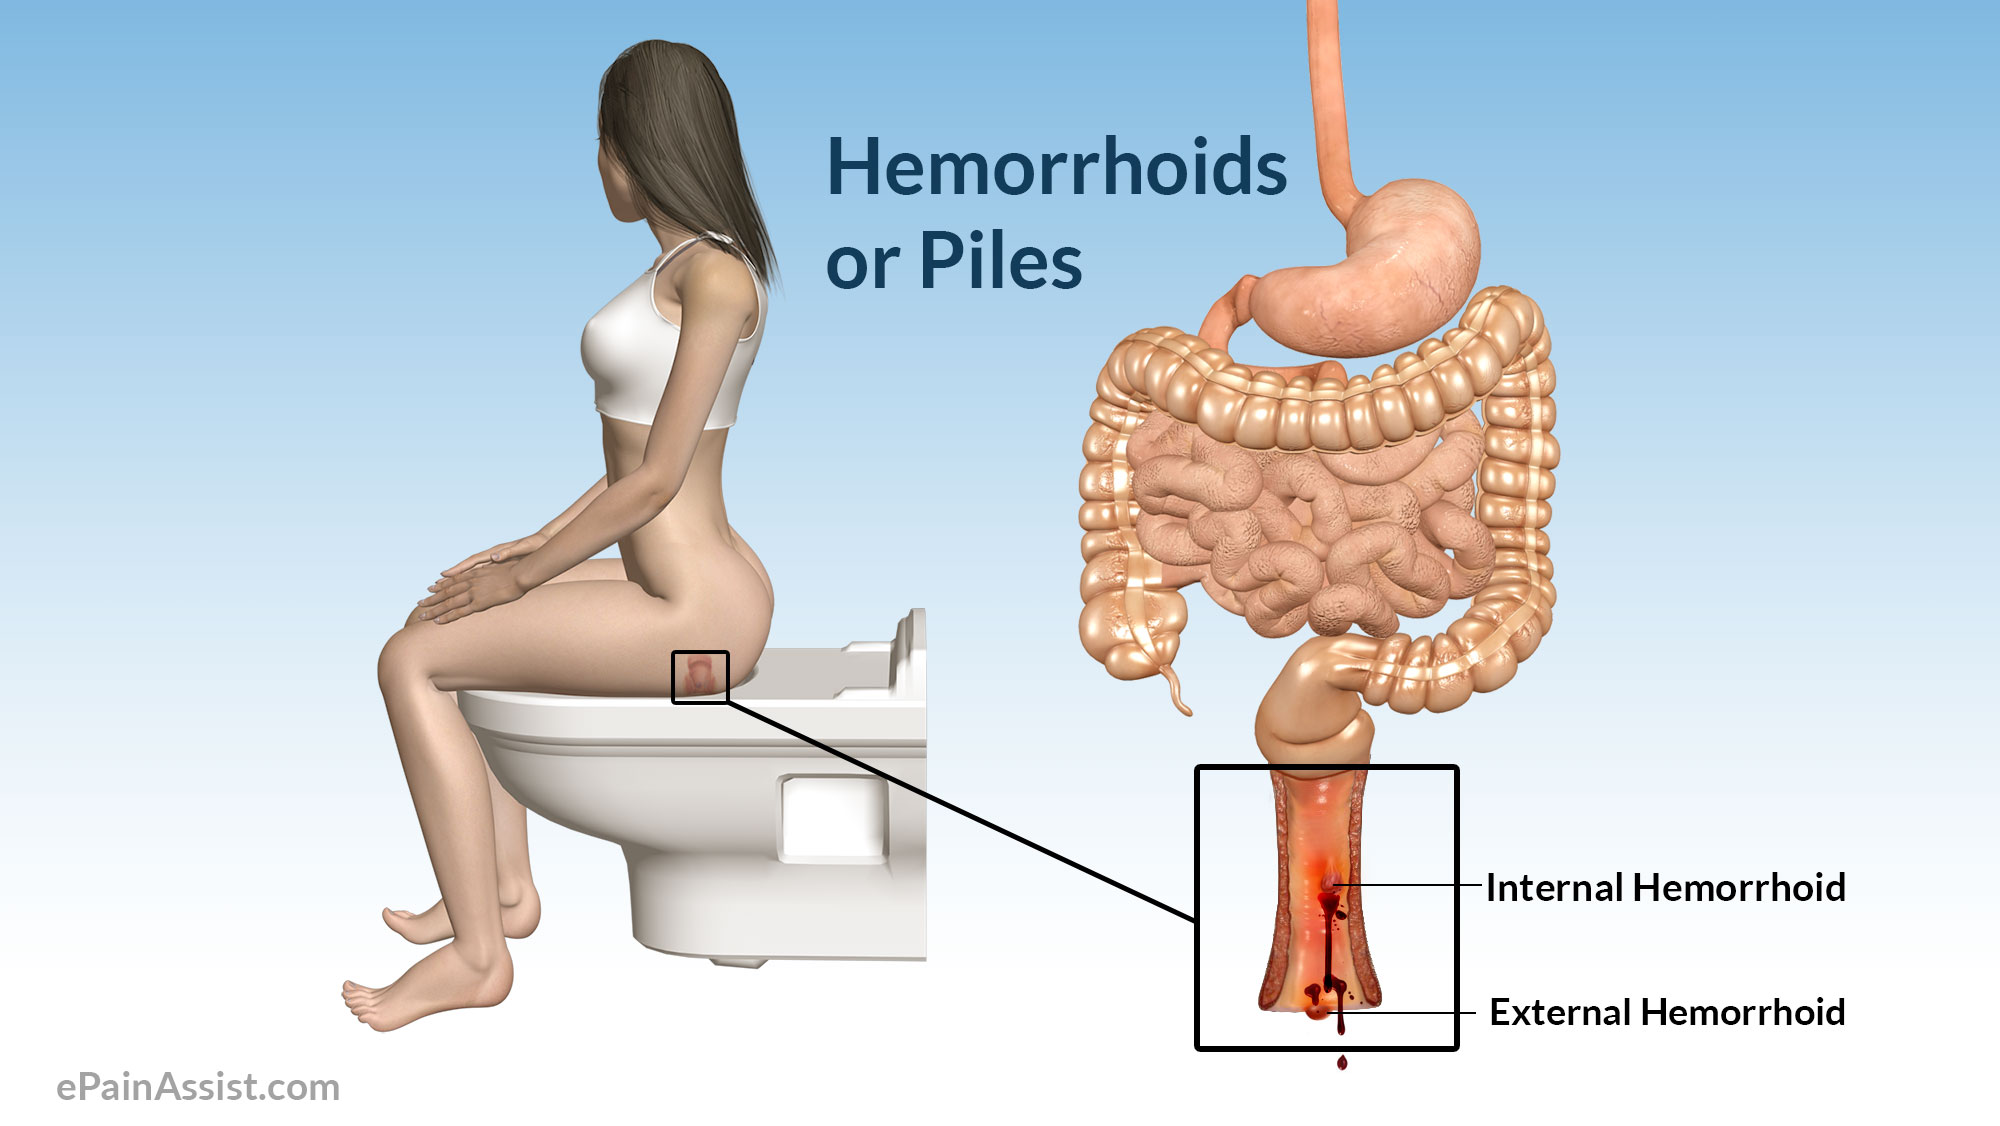 q & a on hemorrhoid or piles: is it a serious disease?, Skeleton